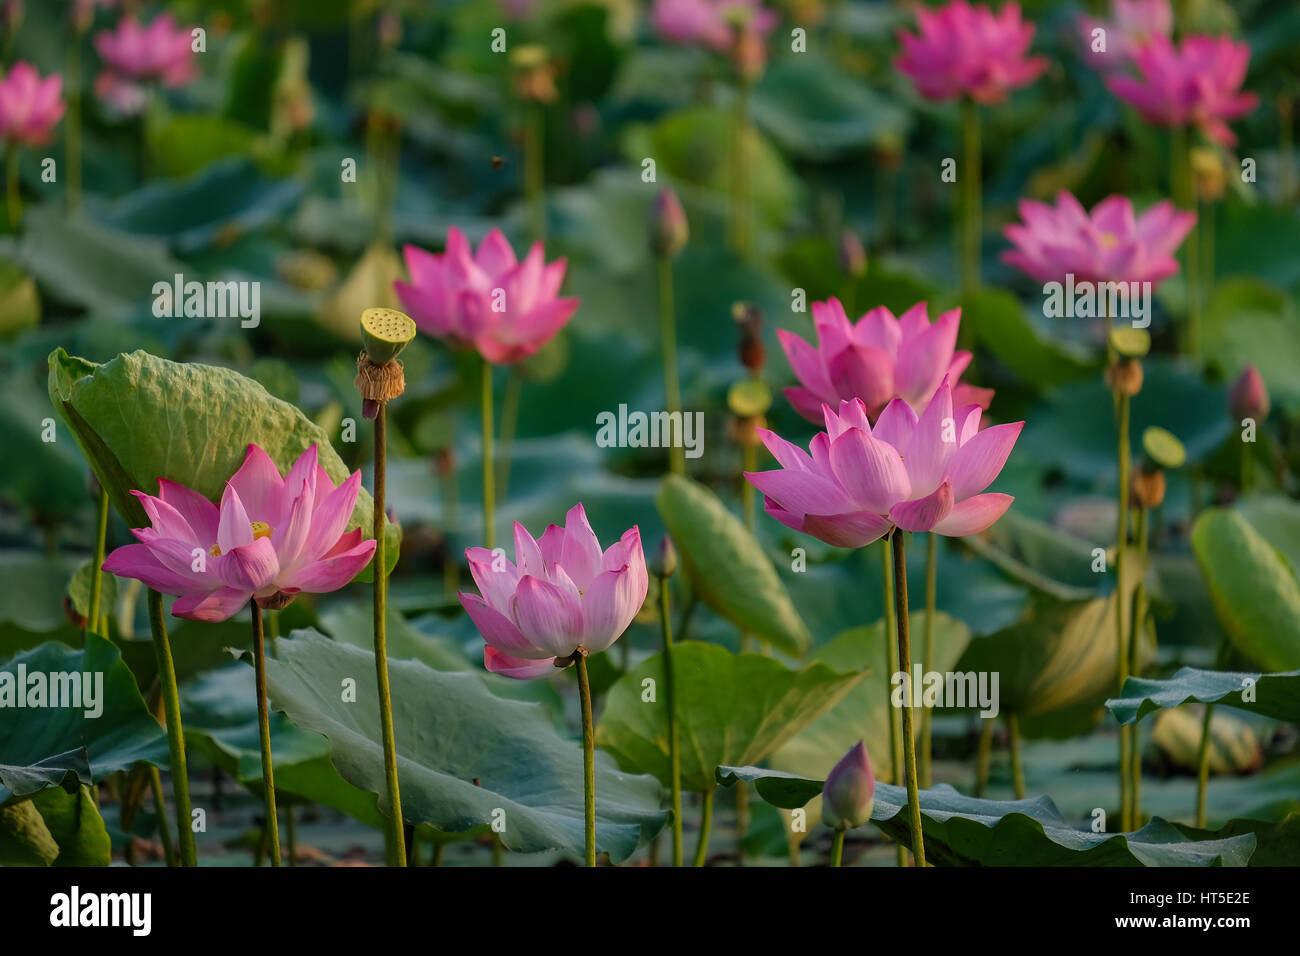 Lotus Flower With Pink, Red, Yellow Colour In The Pond In A Morning Day